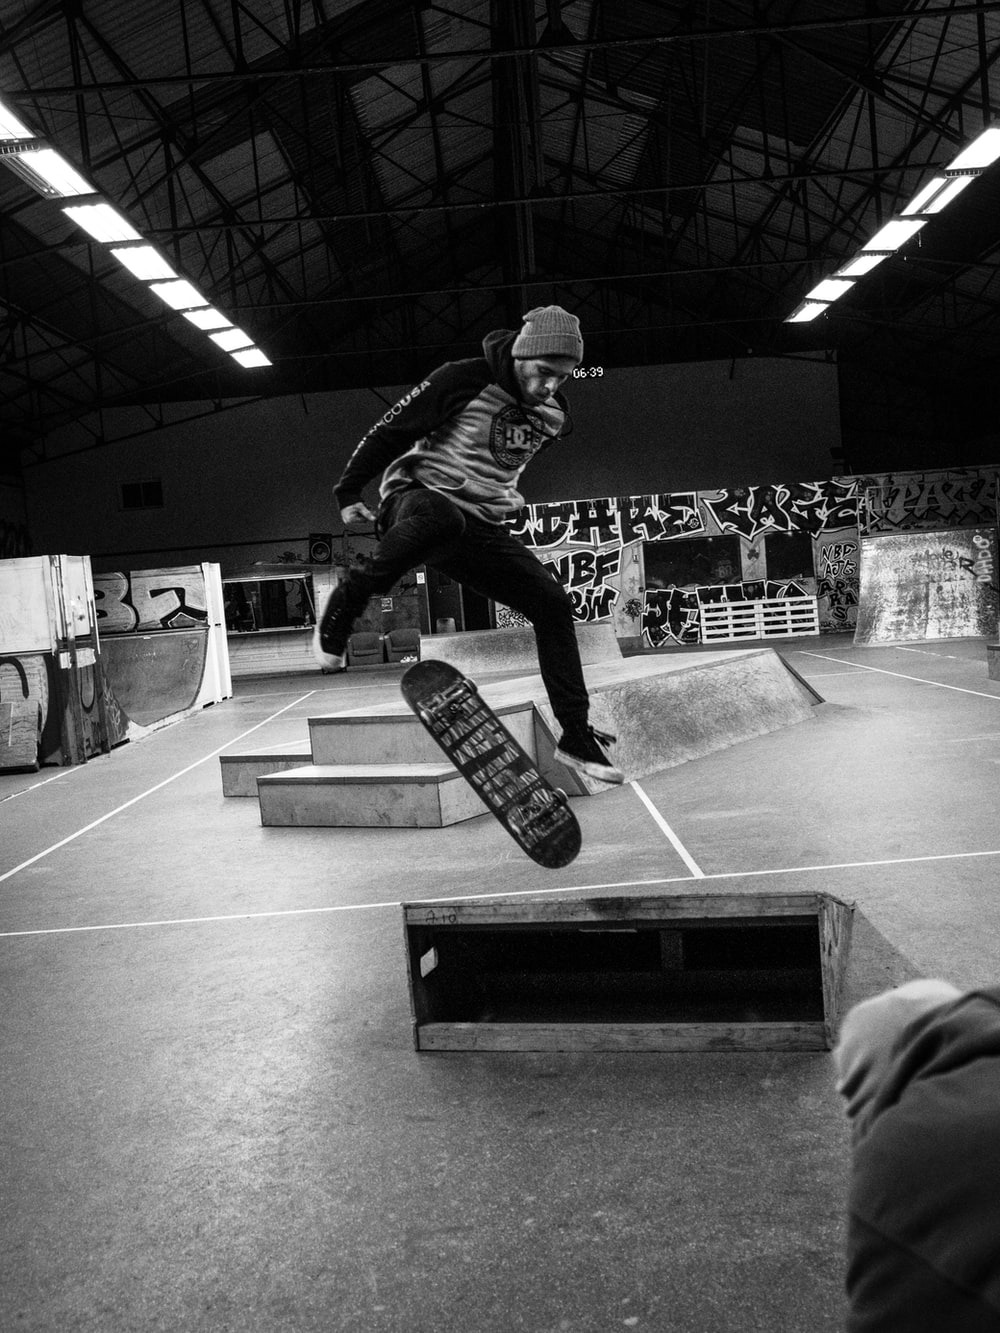 man in black jacket and pants playing skateboard in grayscale photography